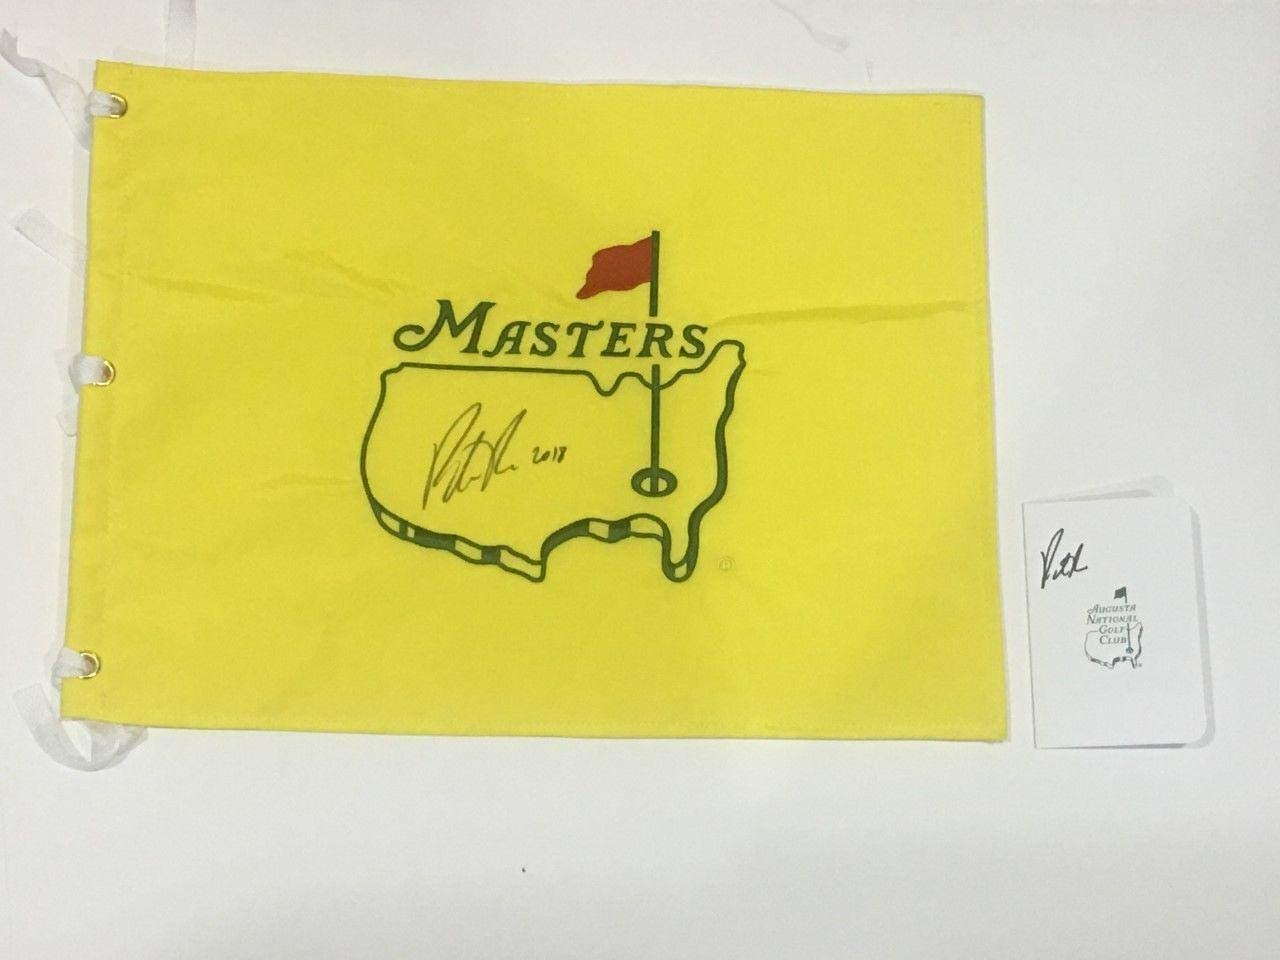 Patrick Reed Signed Undated Masters Flag & Scorecard 2018 Inscription Champion Autographed Pin Flags